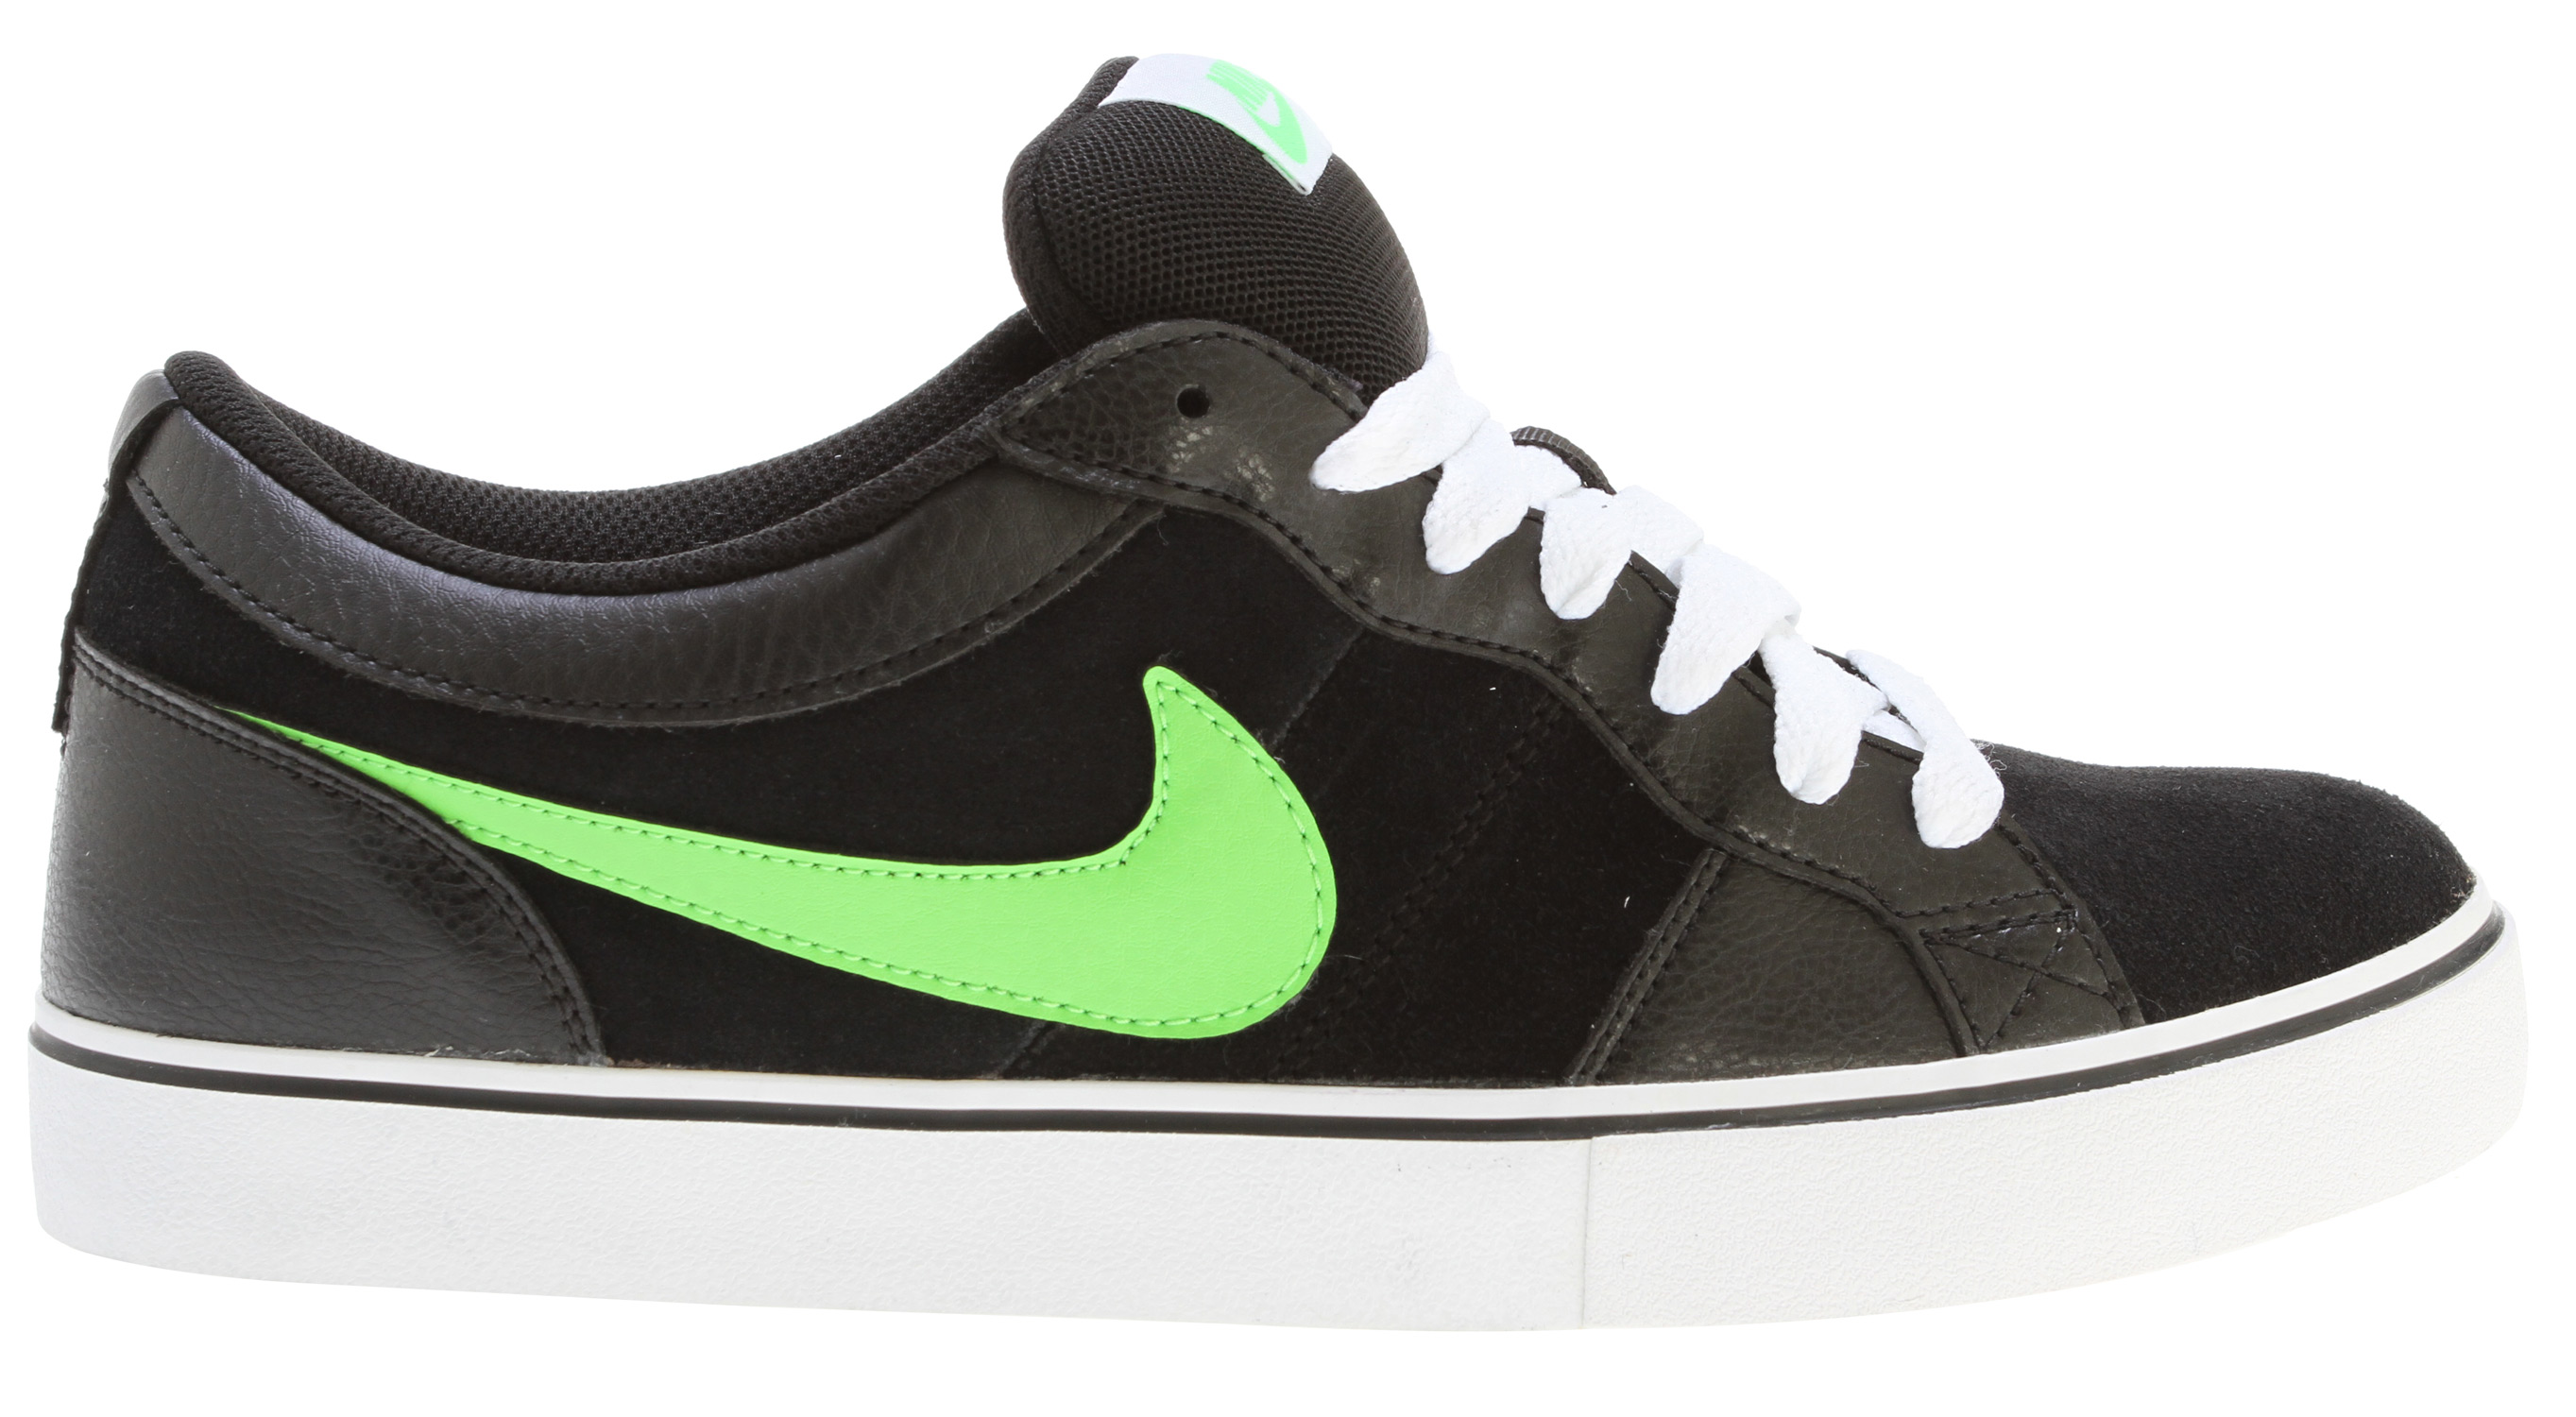 Skateboard Key Features of the Nike 6.0 Isolate Skate Shoes: MIDSOLE: Phylon midsole for comfort. OUTSOLE: Rubber outsole for durability and support. Classic skate look with great material and color applications. UPPER: Suede, leather and Nubuck materials. - $64.95